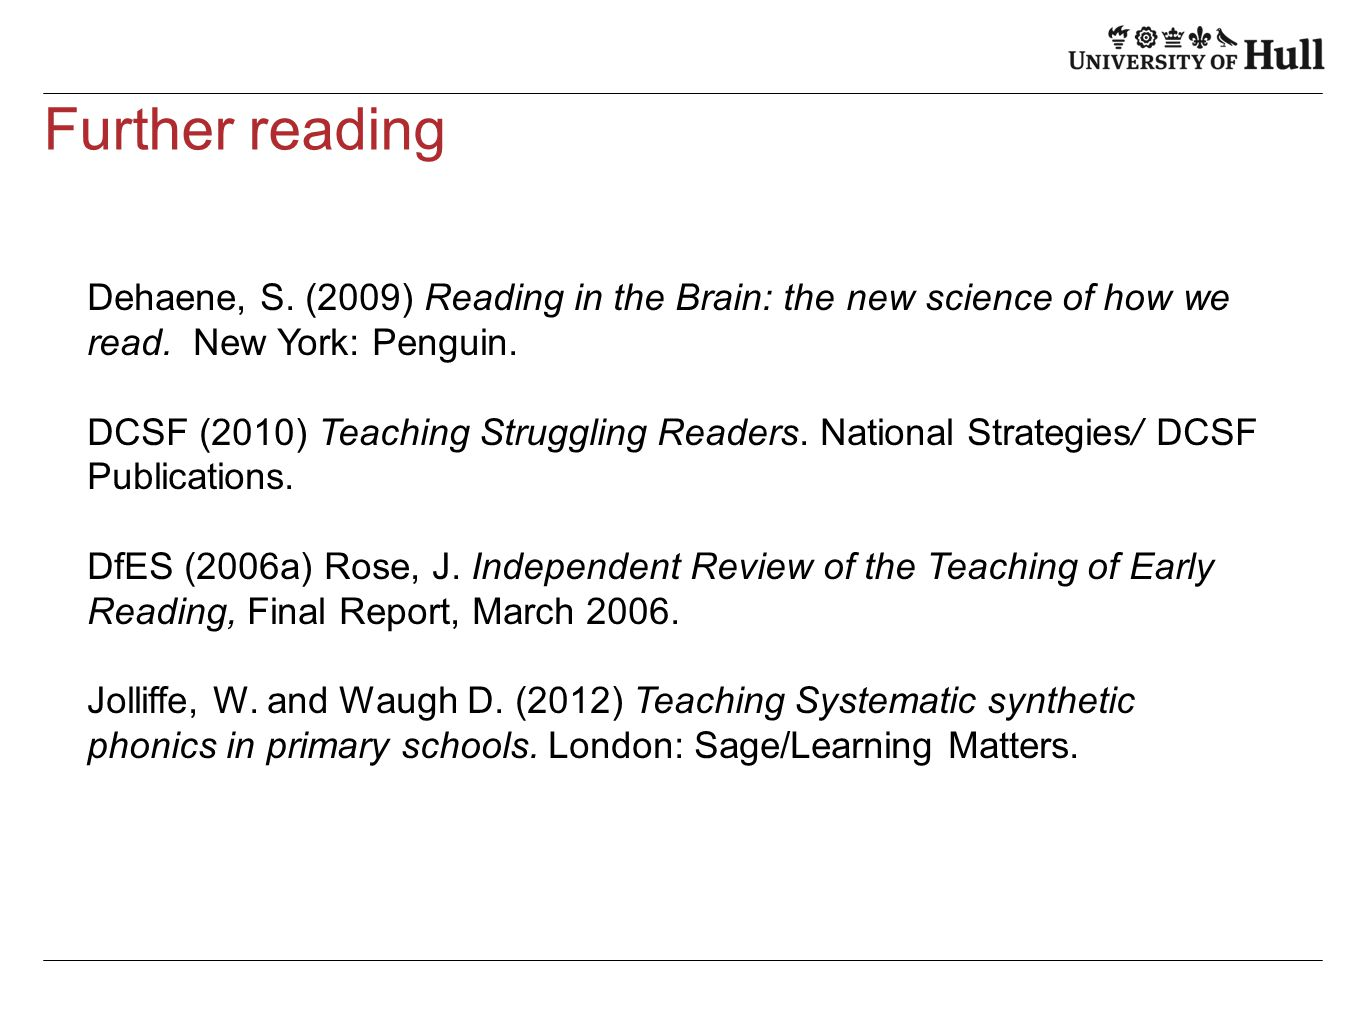 Further reading Dehaene, S. (2009) Reading in the Brain: the new science of how we read. New York: Penguin. DCSF (2010) Teaching Struggling Readers. N